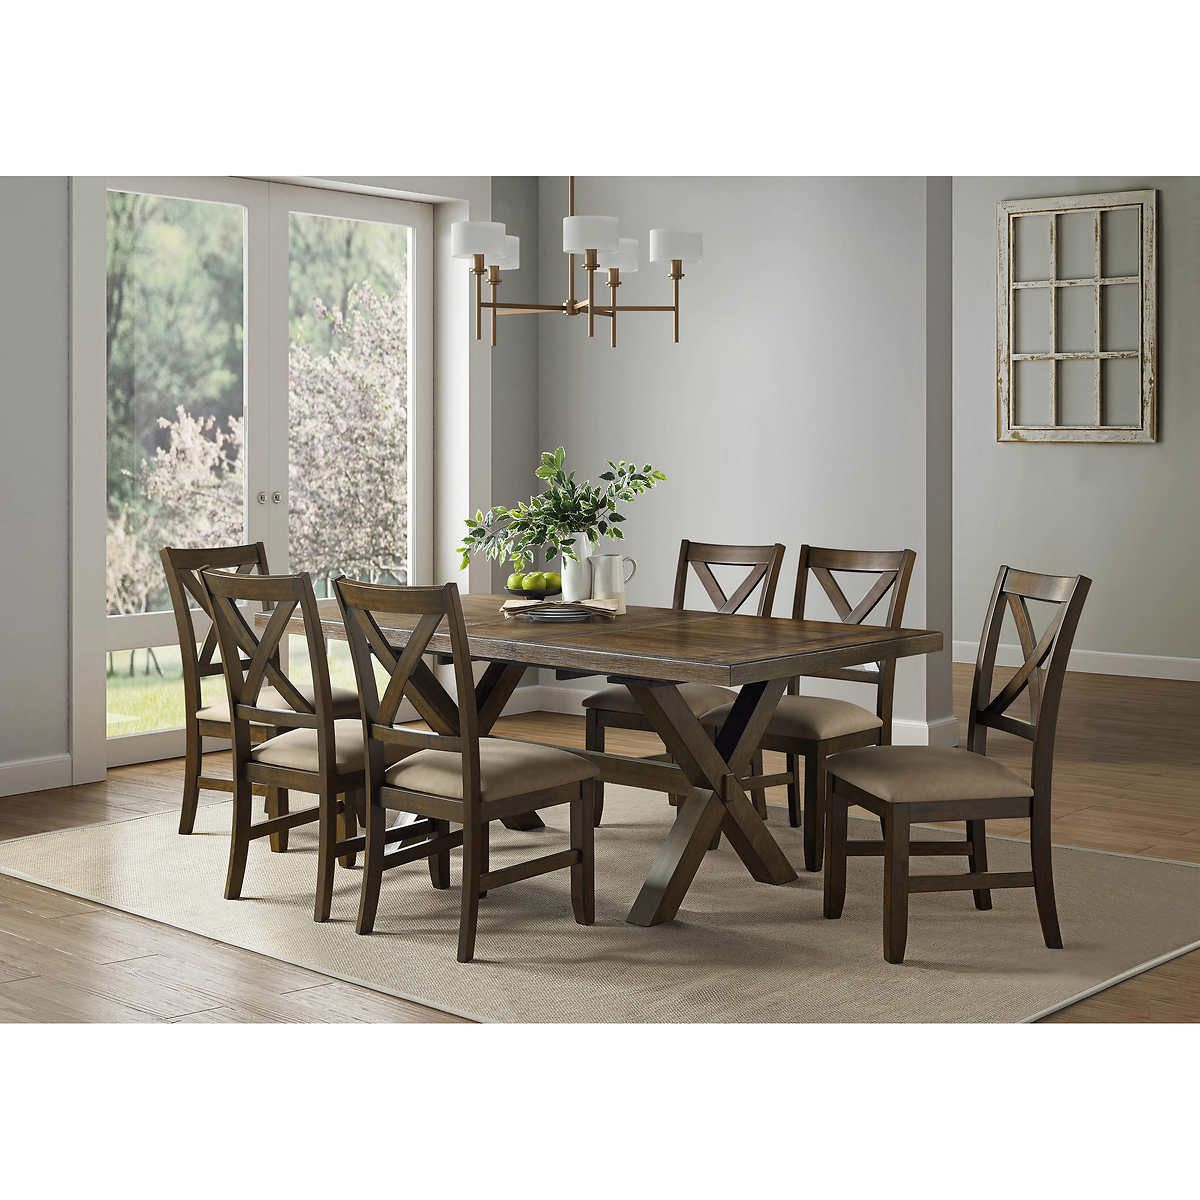 Pin By Melinda B On House Wishlist 7 Piece Dining Set Dining Table In Kitchen Dining Table Dimensions